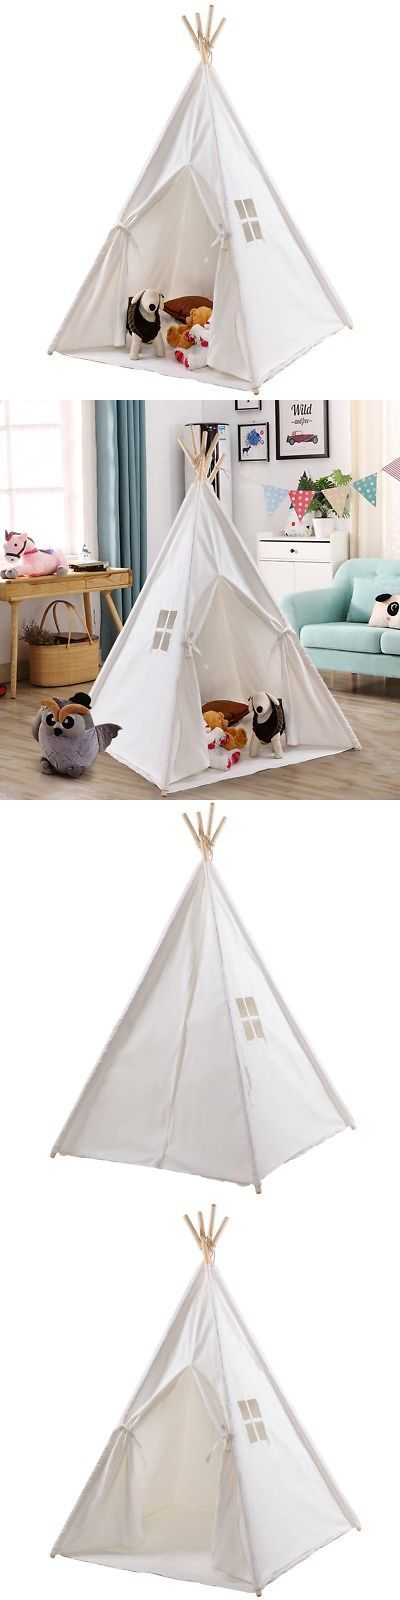 Play Tents 145997: 5 Portable Sleeping Dome Play Tent Indian Children Kid Teepee Tipi White Lovely -> BUY IT NOW ONLY: $55.98 on eBay!